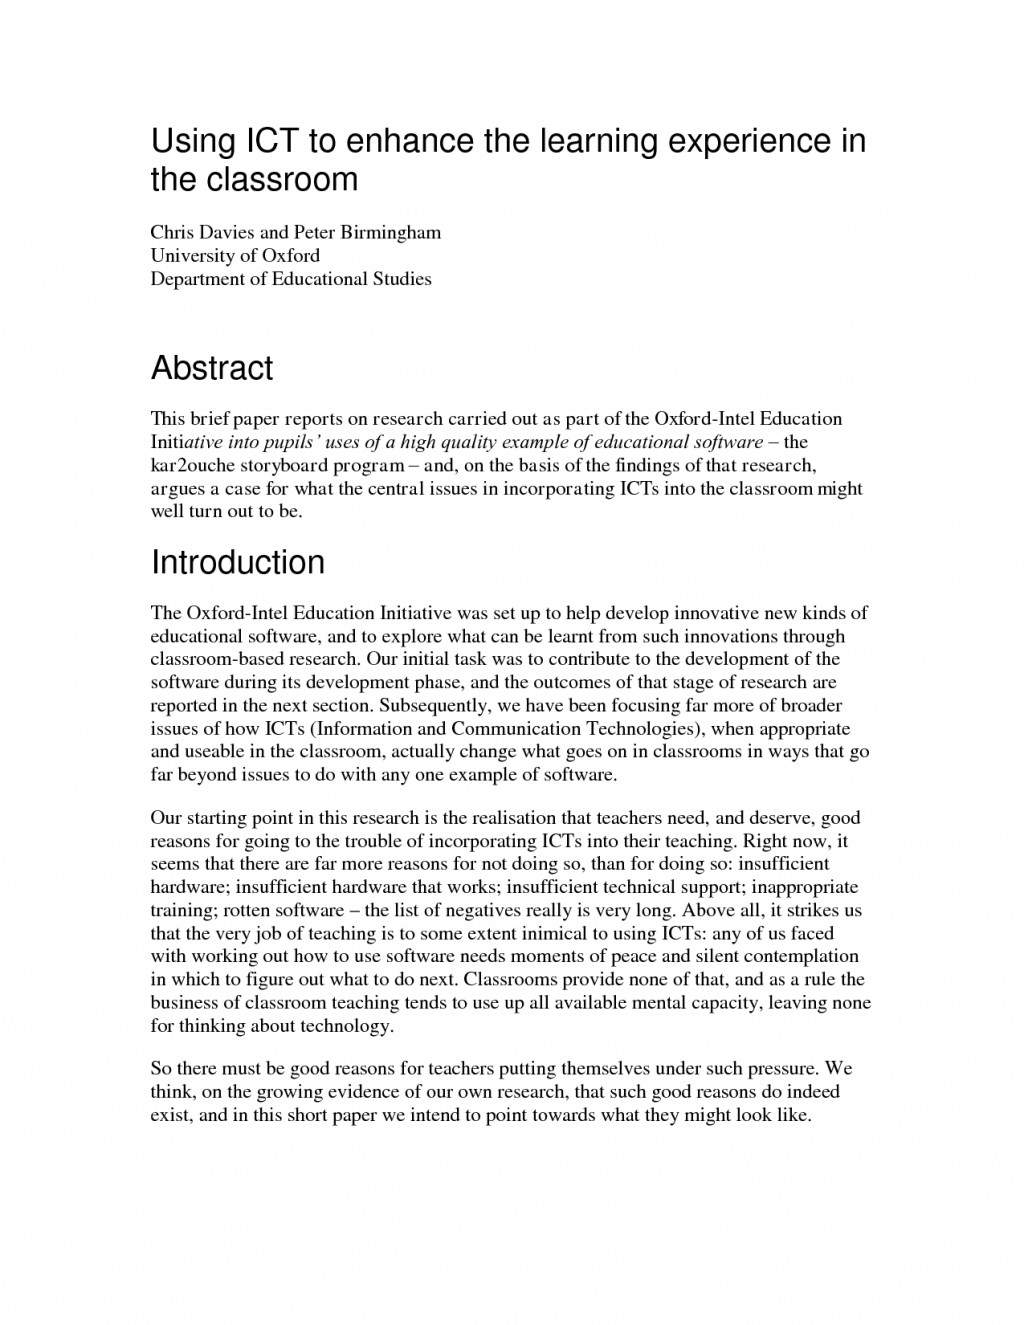 003 Abstract Essay Vnl5ujiga0 Unbelievable Sample Abstract/universal Definition Examples Large